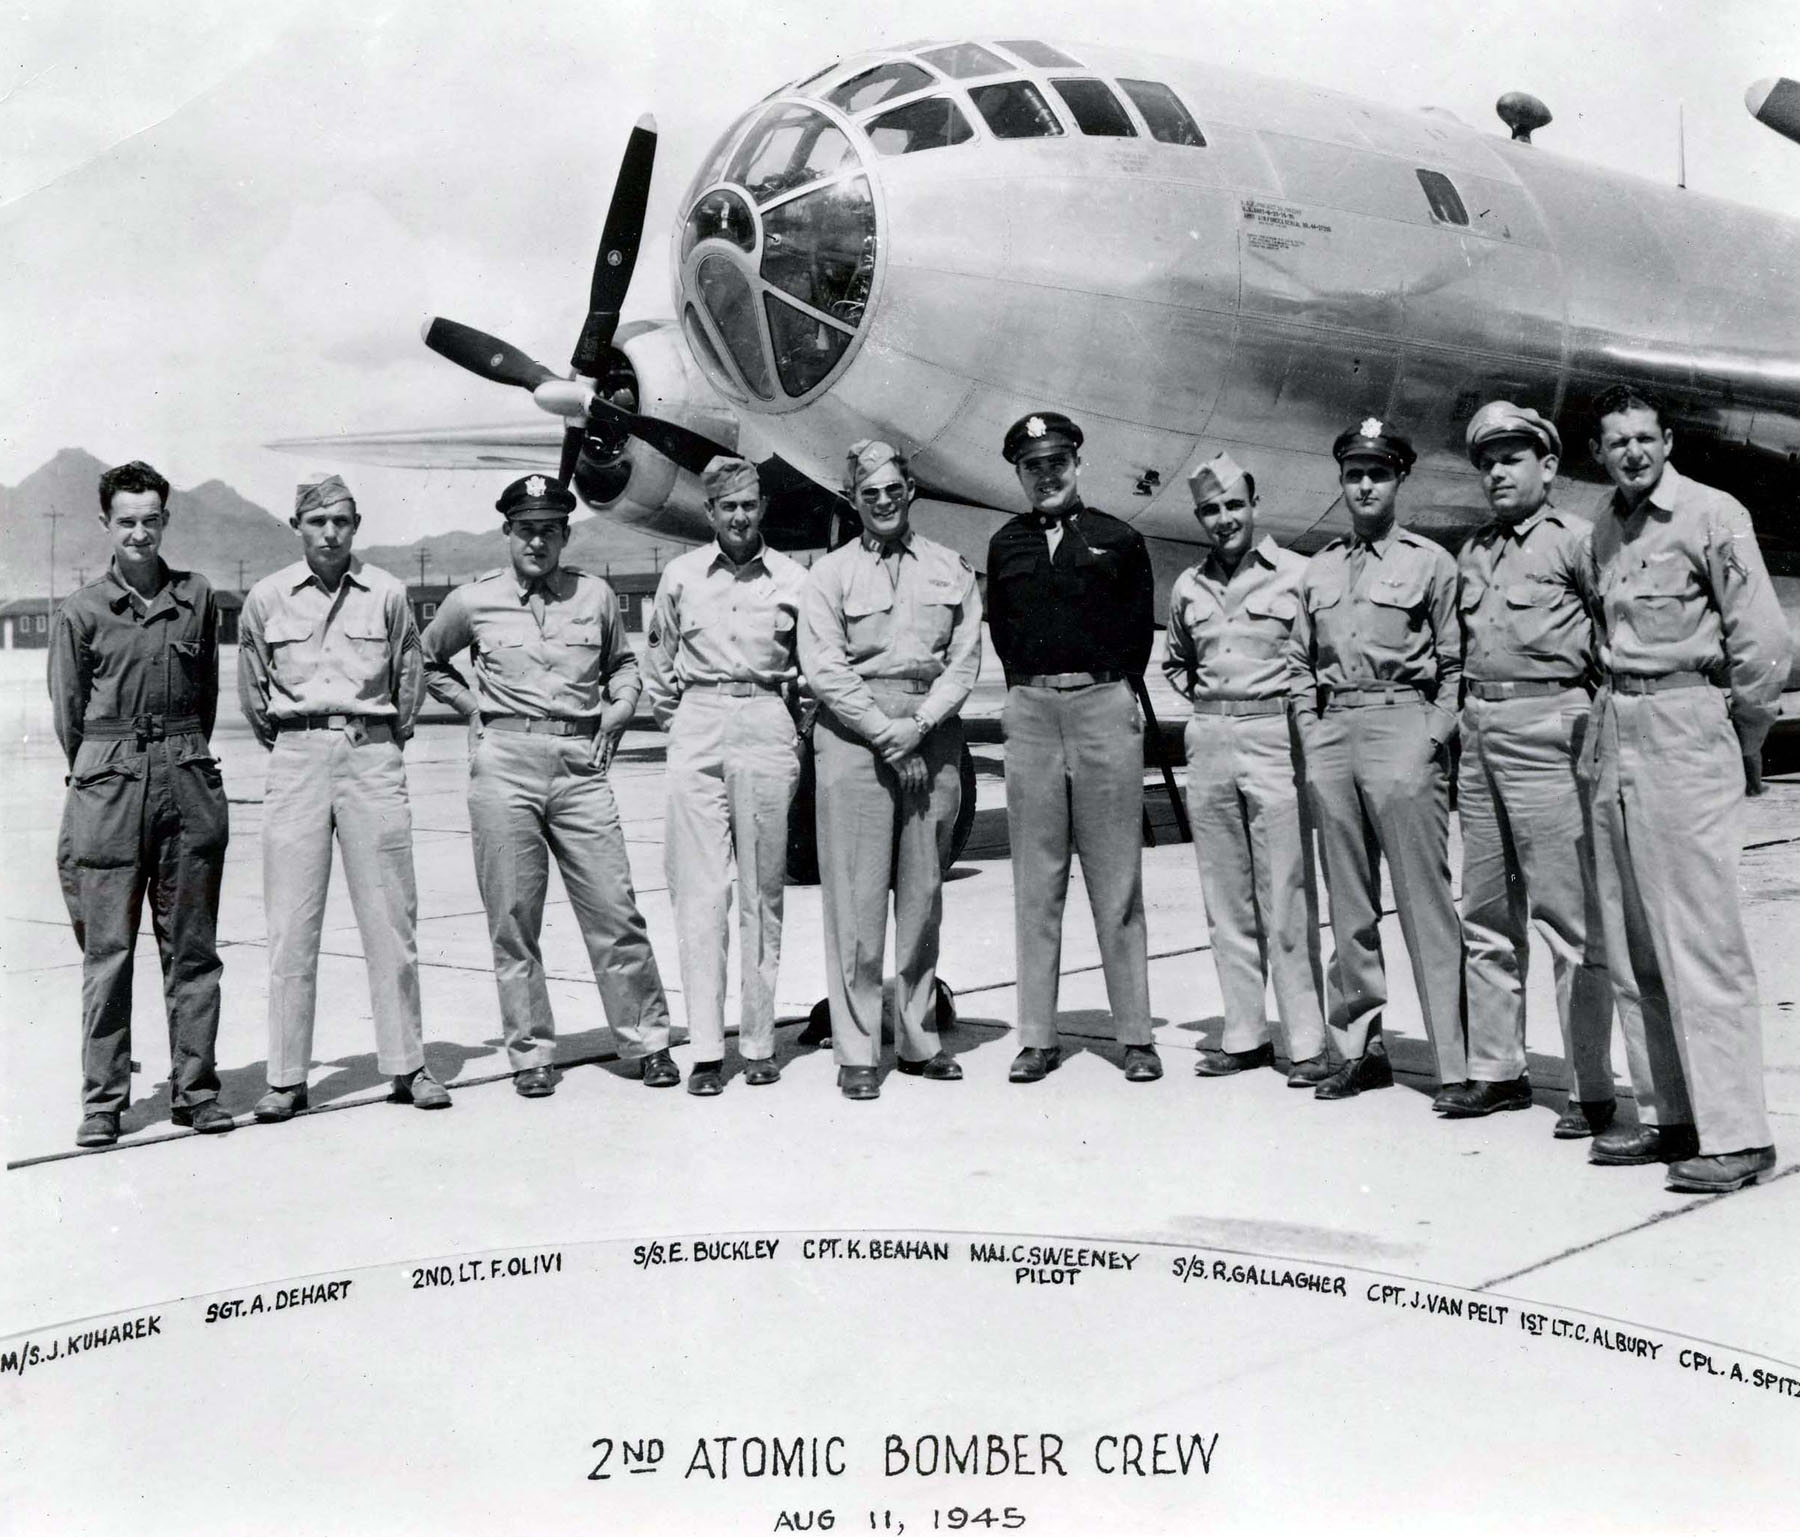 from Saul atomic bomb enola gay man mission